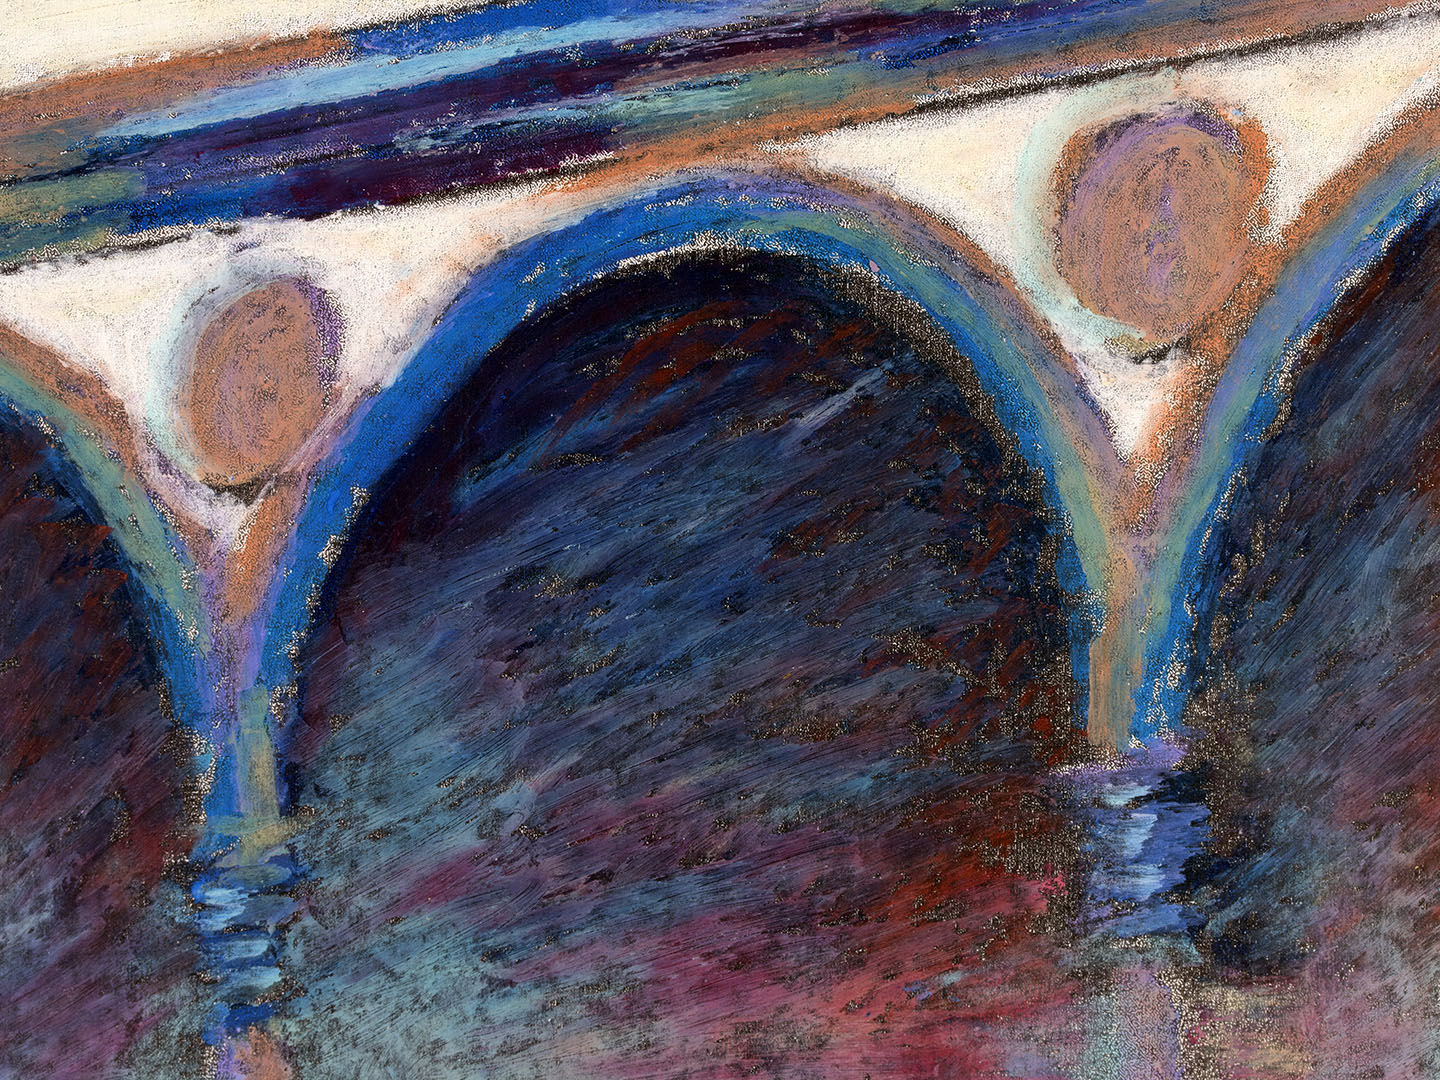 Arches in a Florentin plaza